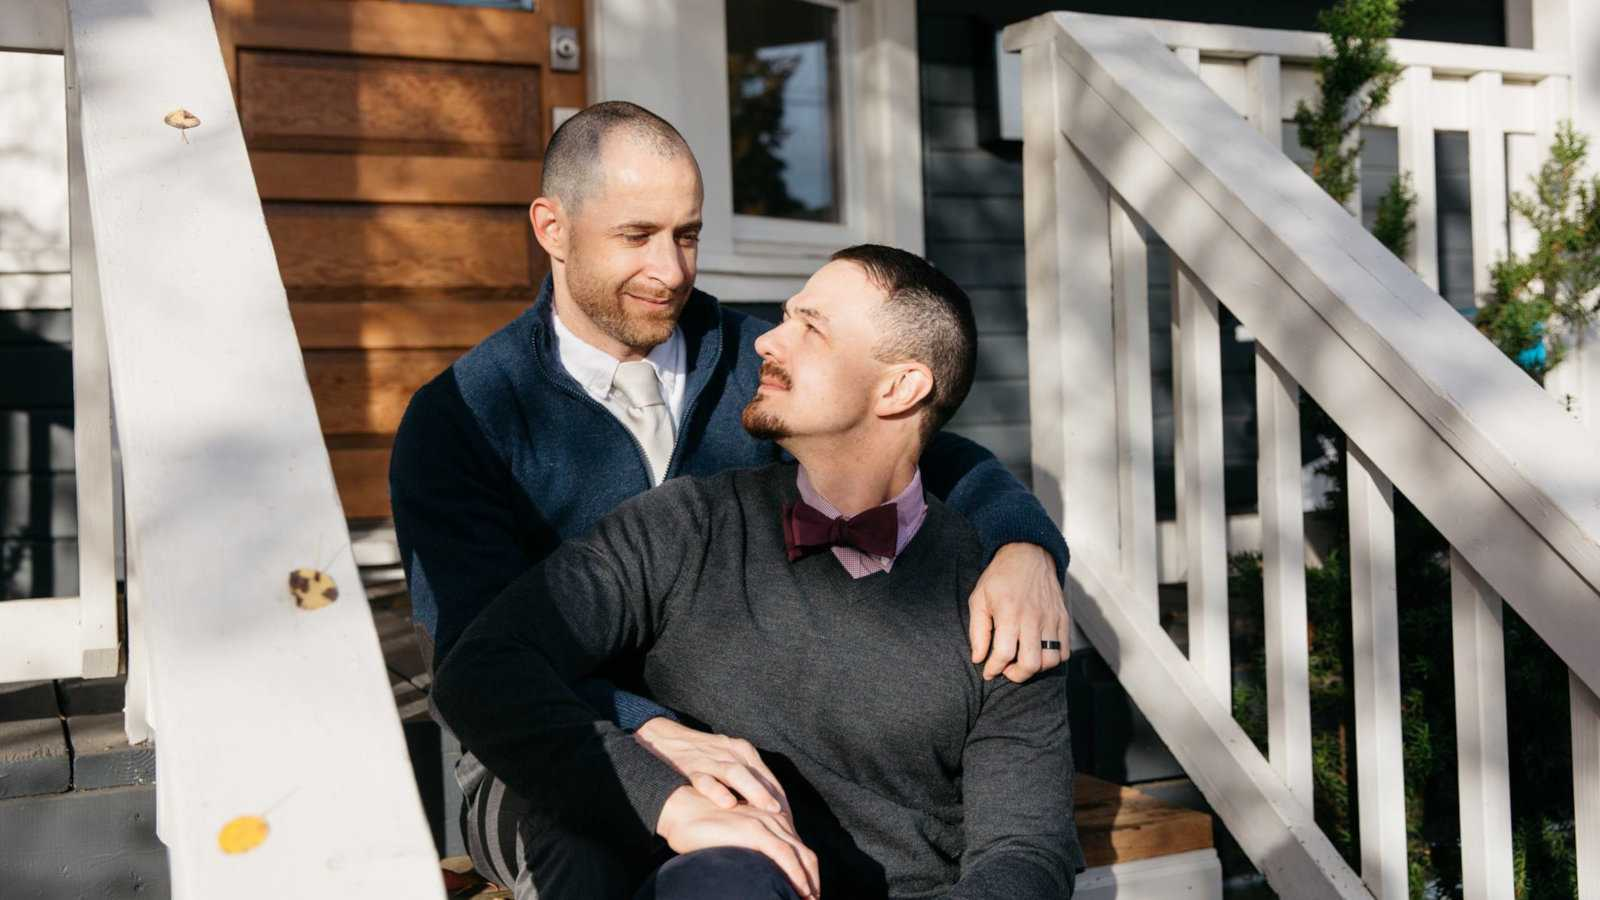 On the Modern Kinship blog, husbands Constantino and David share their thoughts on life as gay Christian men